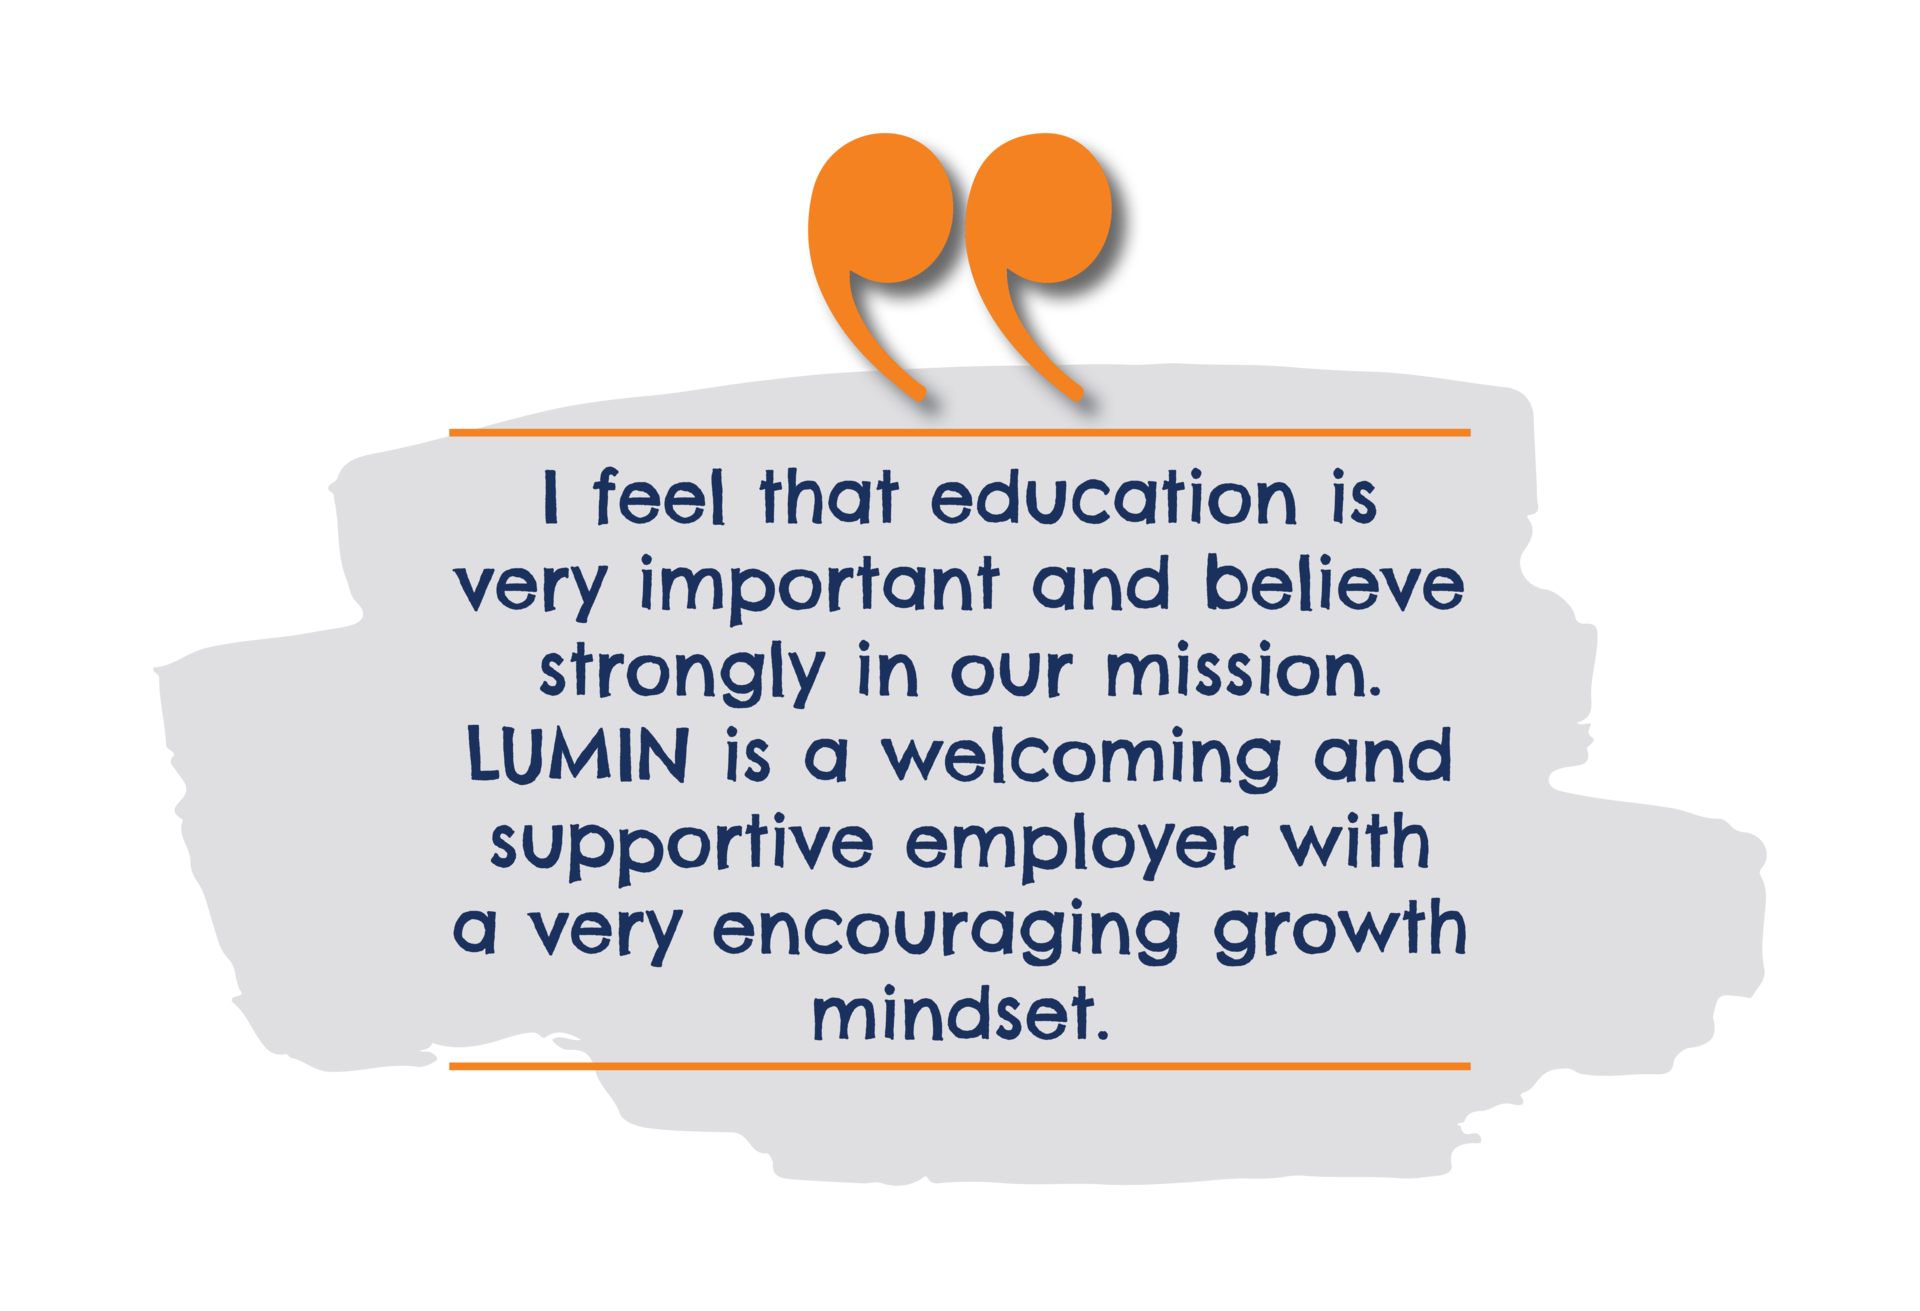 I feel that education is very important and believe strongly in our mission. LUMIN is a welcoming and supportive employer with a very encouraging growth mindset.